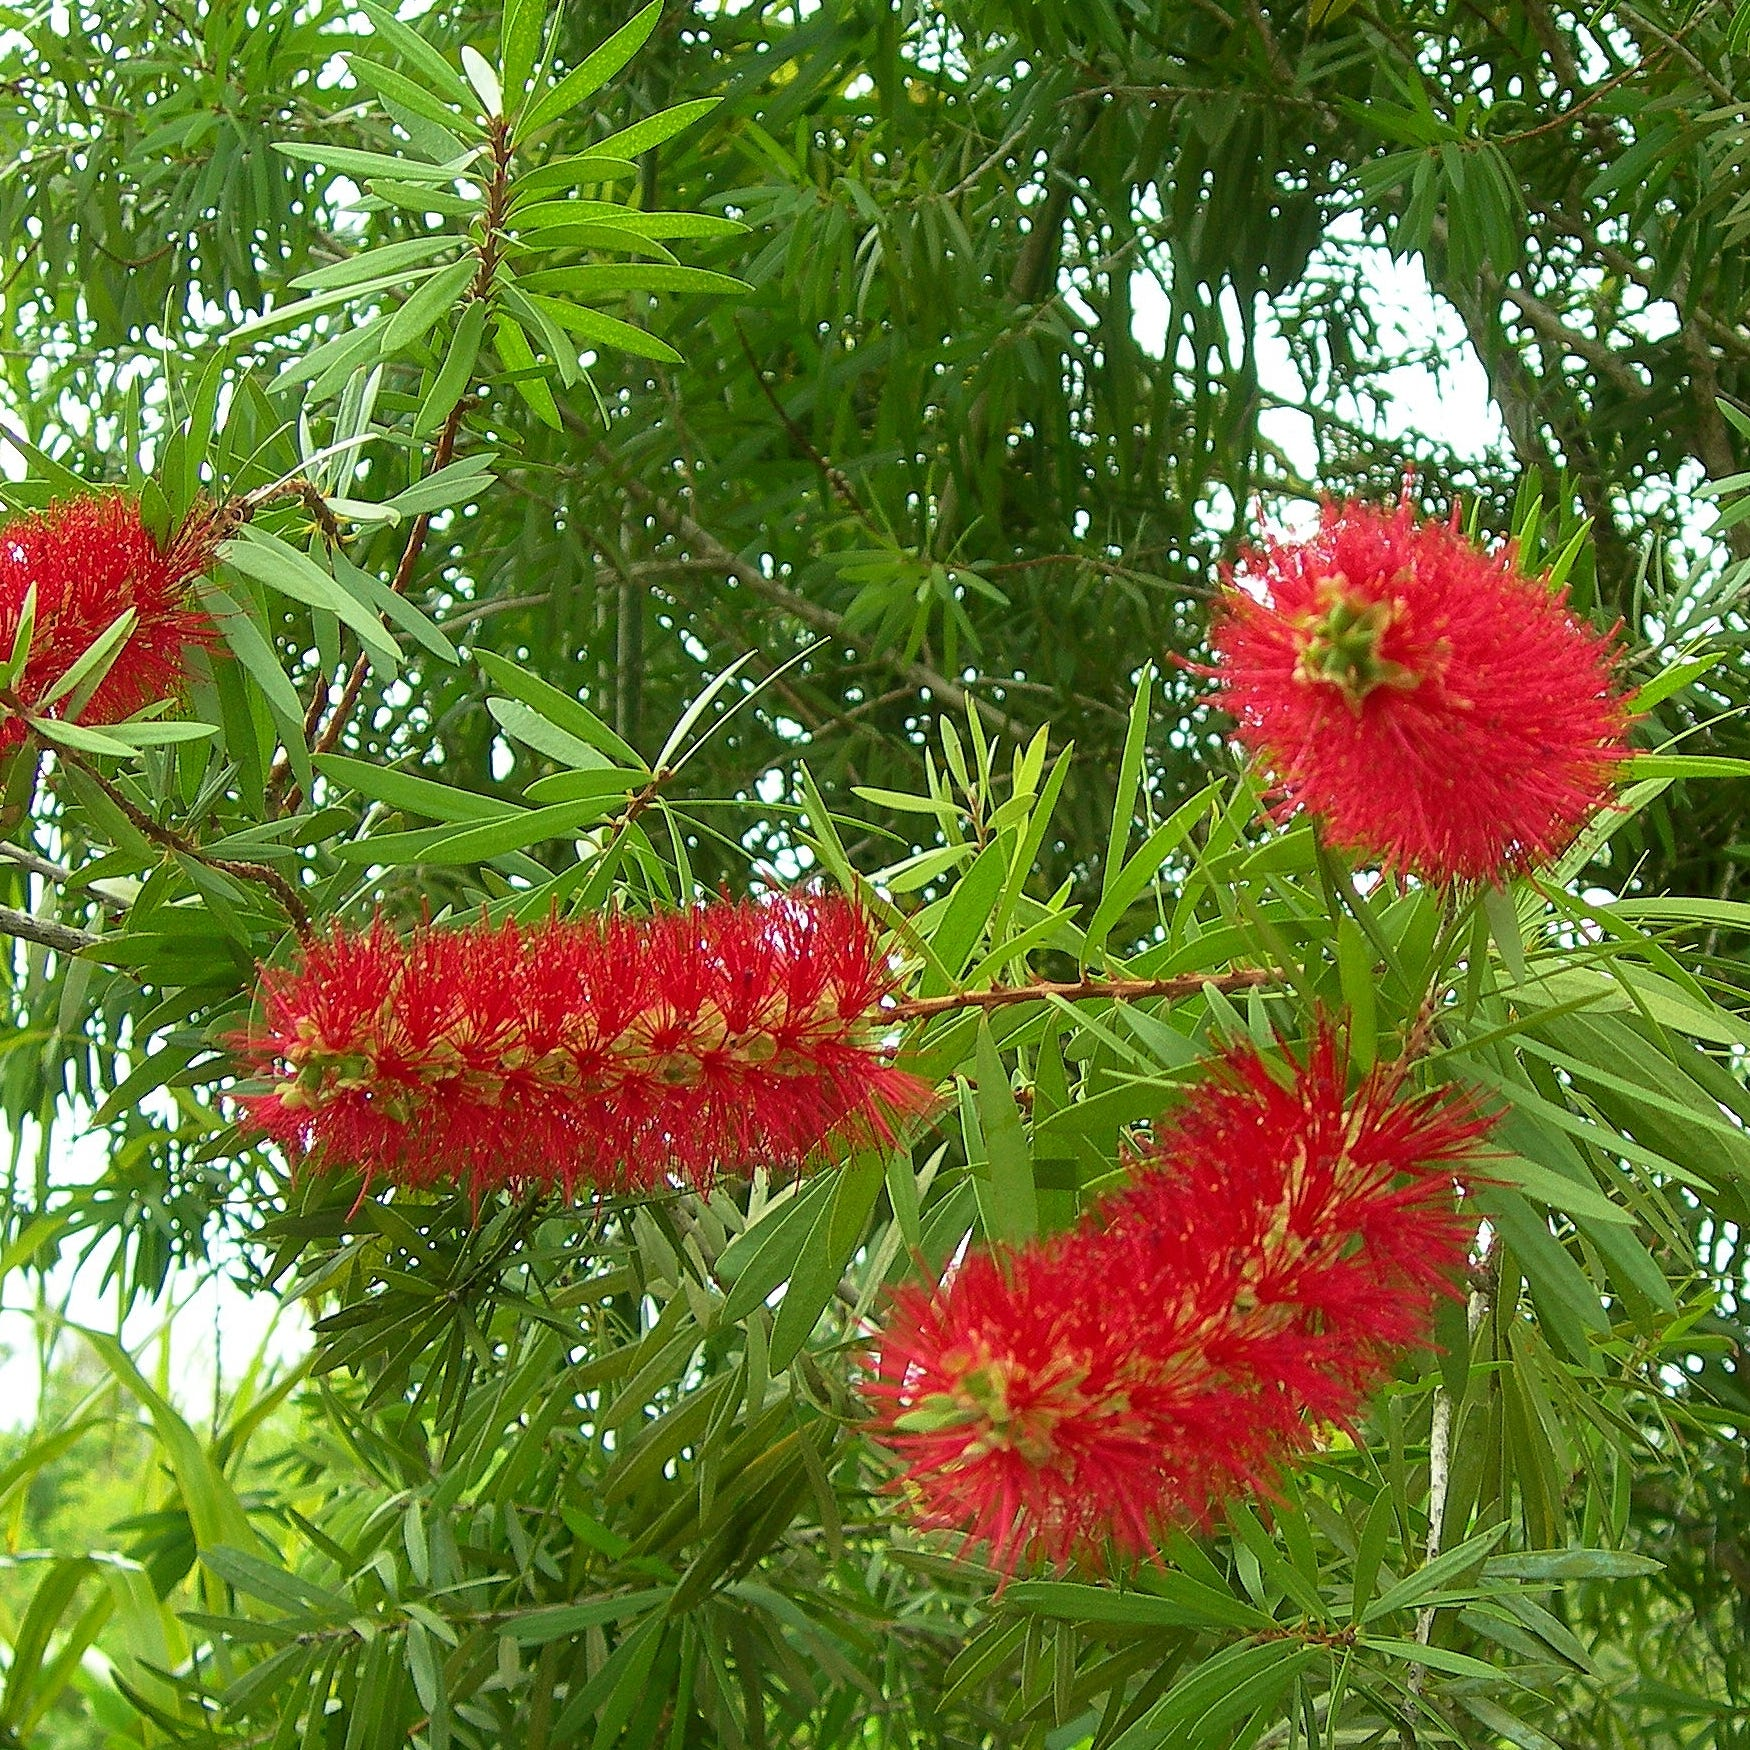 Bottlebrush trees produce pretty flowers but are short lived in Treasure Coast landscapes